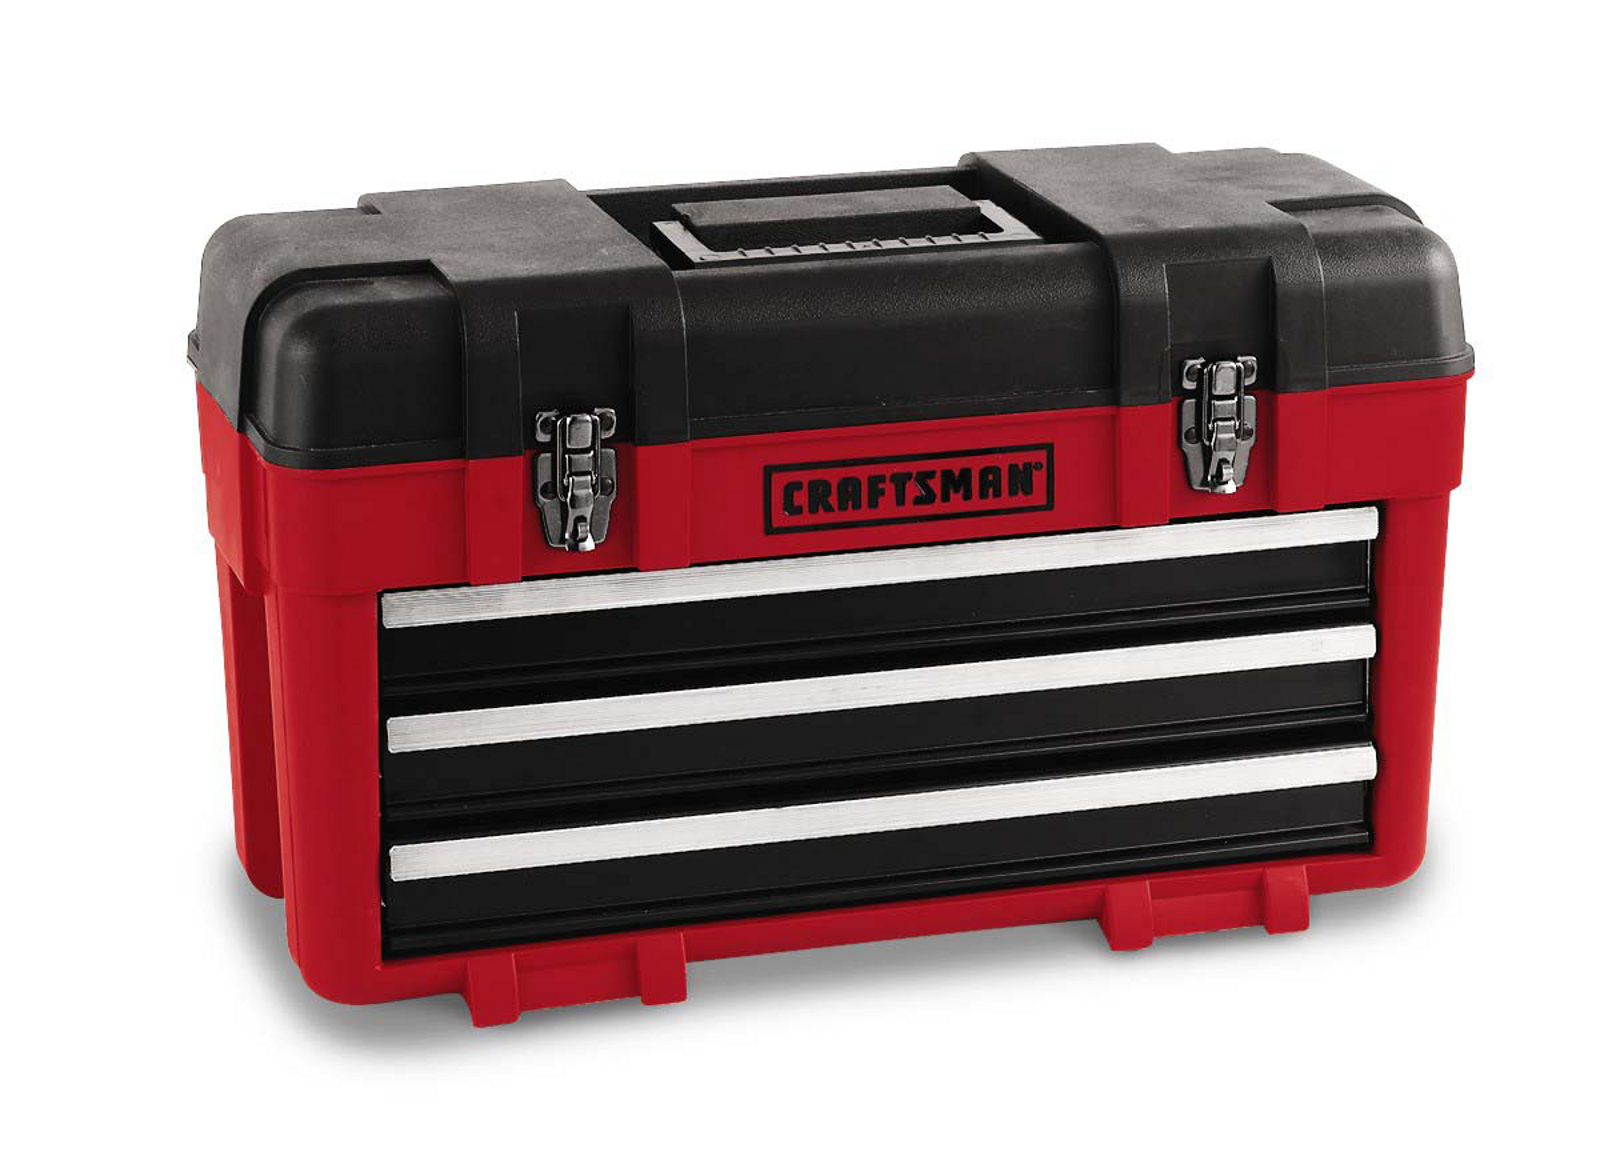 Craftsman Red 3-Drawer Metal Portable Chest Toolbox